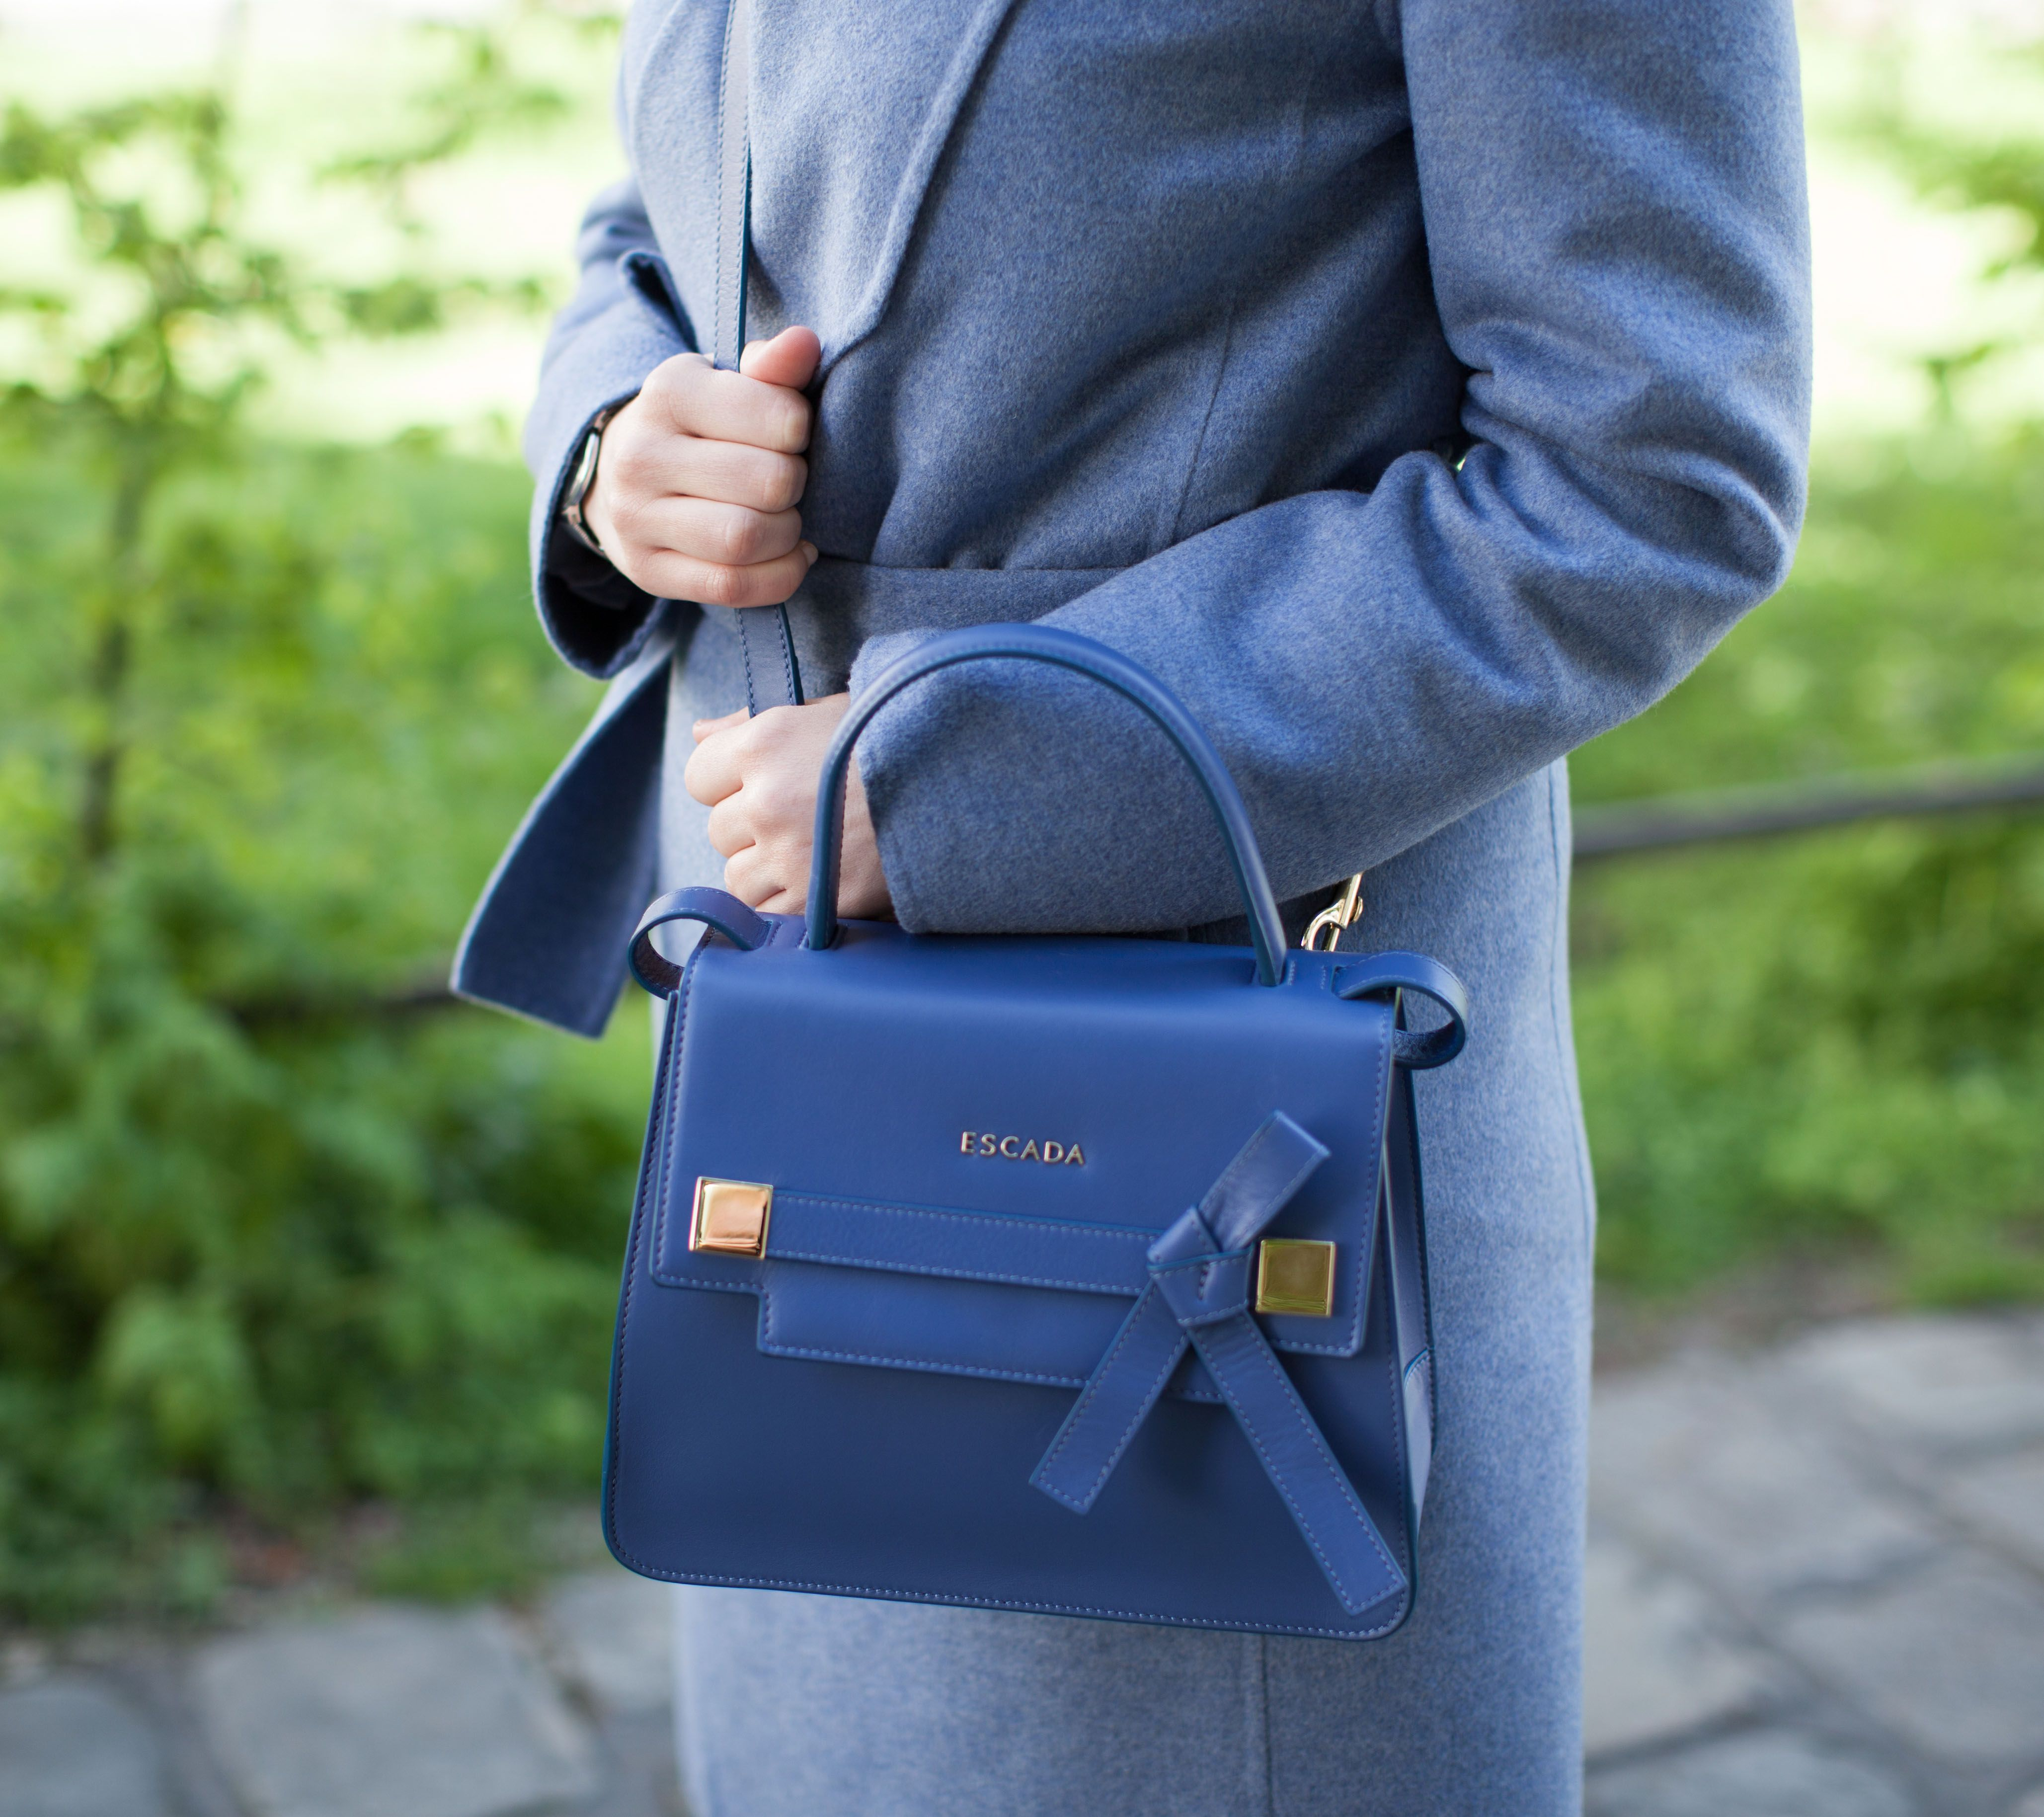 The Mini Bag Is This Season S Must Have Piece For Reason Our Iconic Escada Ml40 Now Comes In A Size